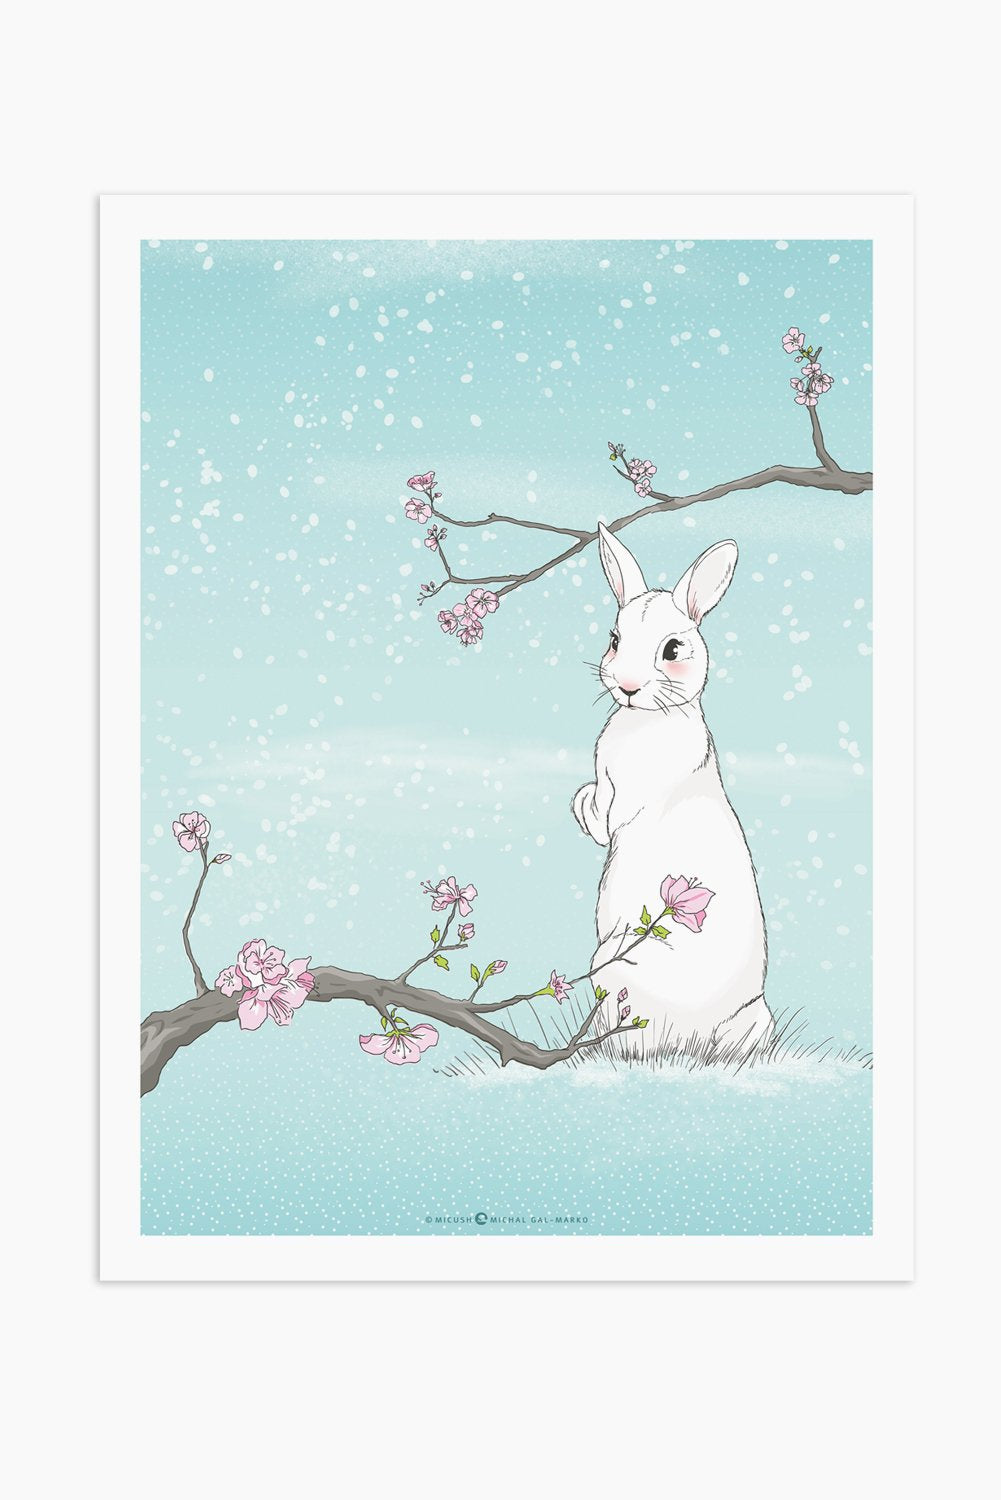 Art Print - Snow Rabbit